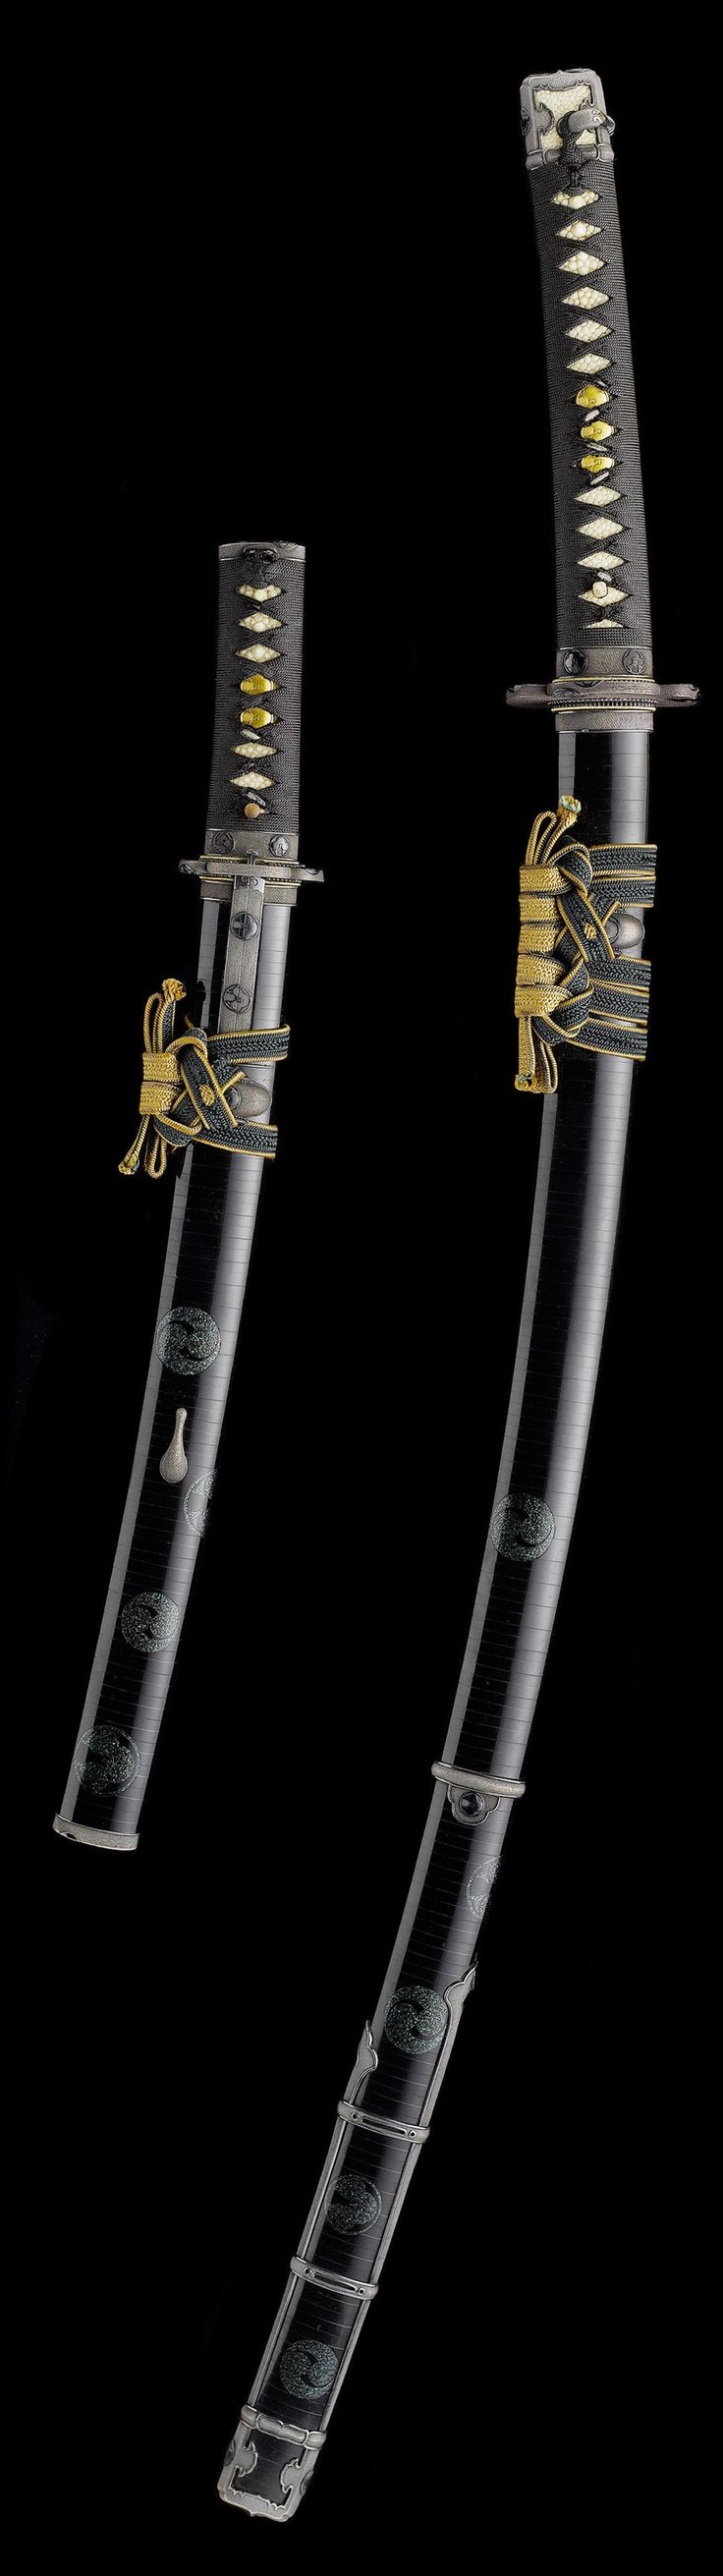 Nothing beats simplicity right ? Picsource : bonhams.com   Samurai Sword Shop Info CenterUSA dave@samurai-sword-shop.com00